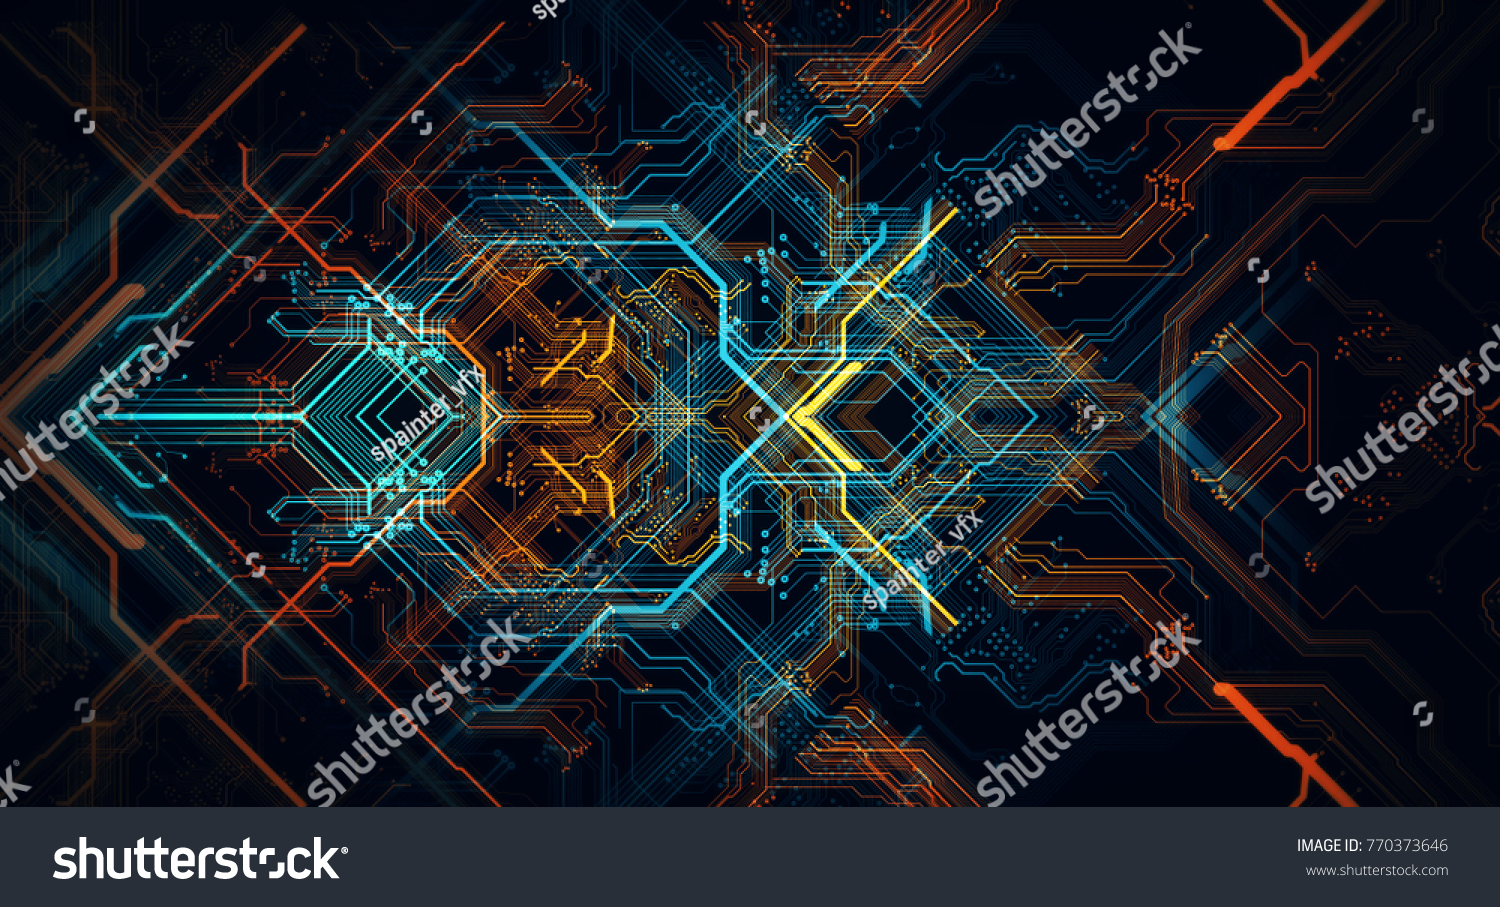 Royalty Free Stock Illustration Of Abstract Technological Background Pics Photos Desktop Wallpapers Printed Circuit Board Pictures Made Different Element Depth Field Effect And